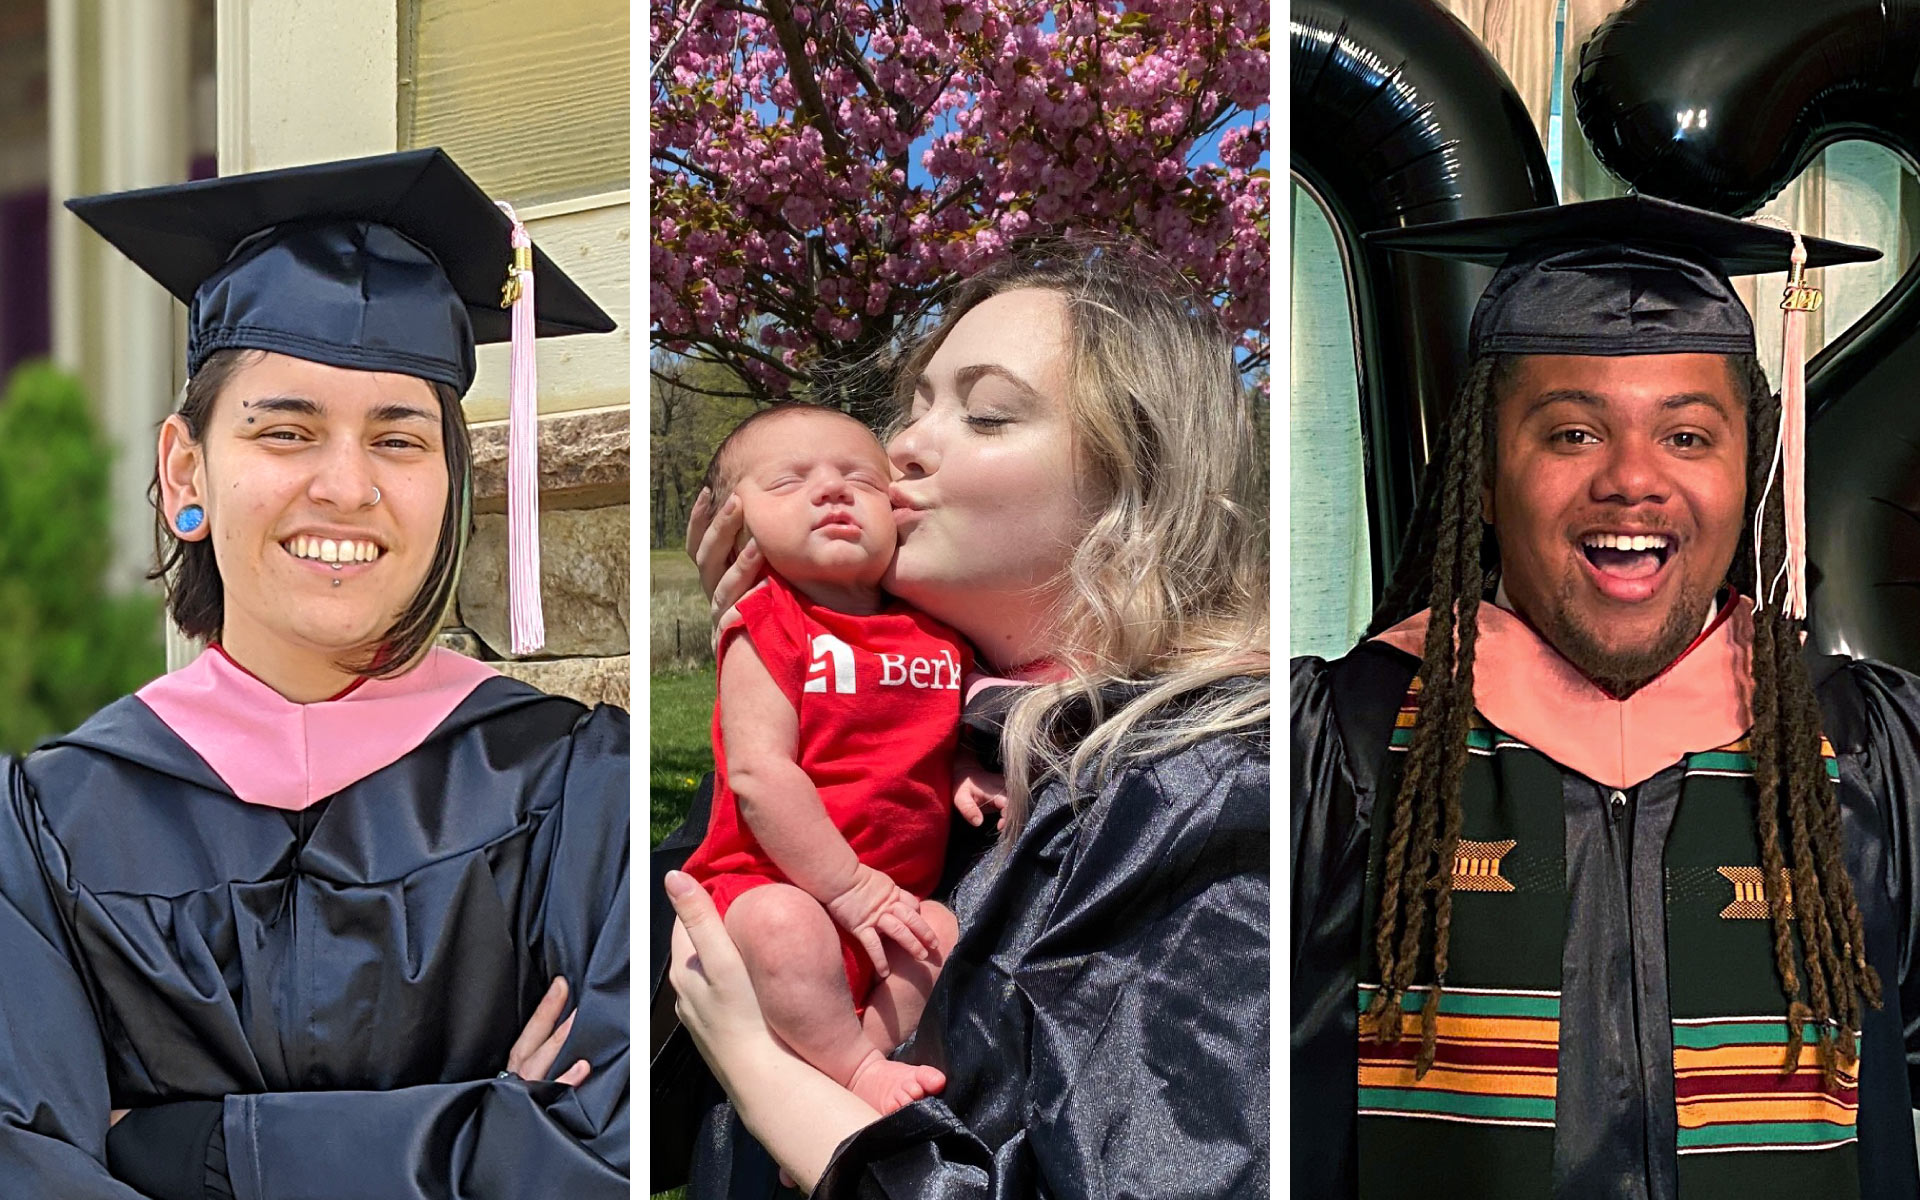 Berklee Online 2020 graduates Allegra Hernandez, Carrie Lane Pearlman, and Ryan Harris.